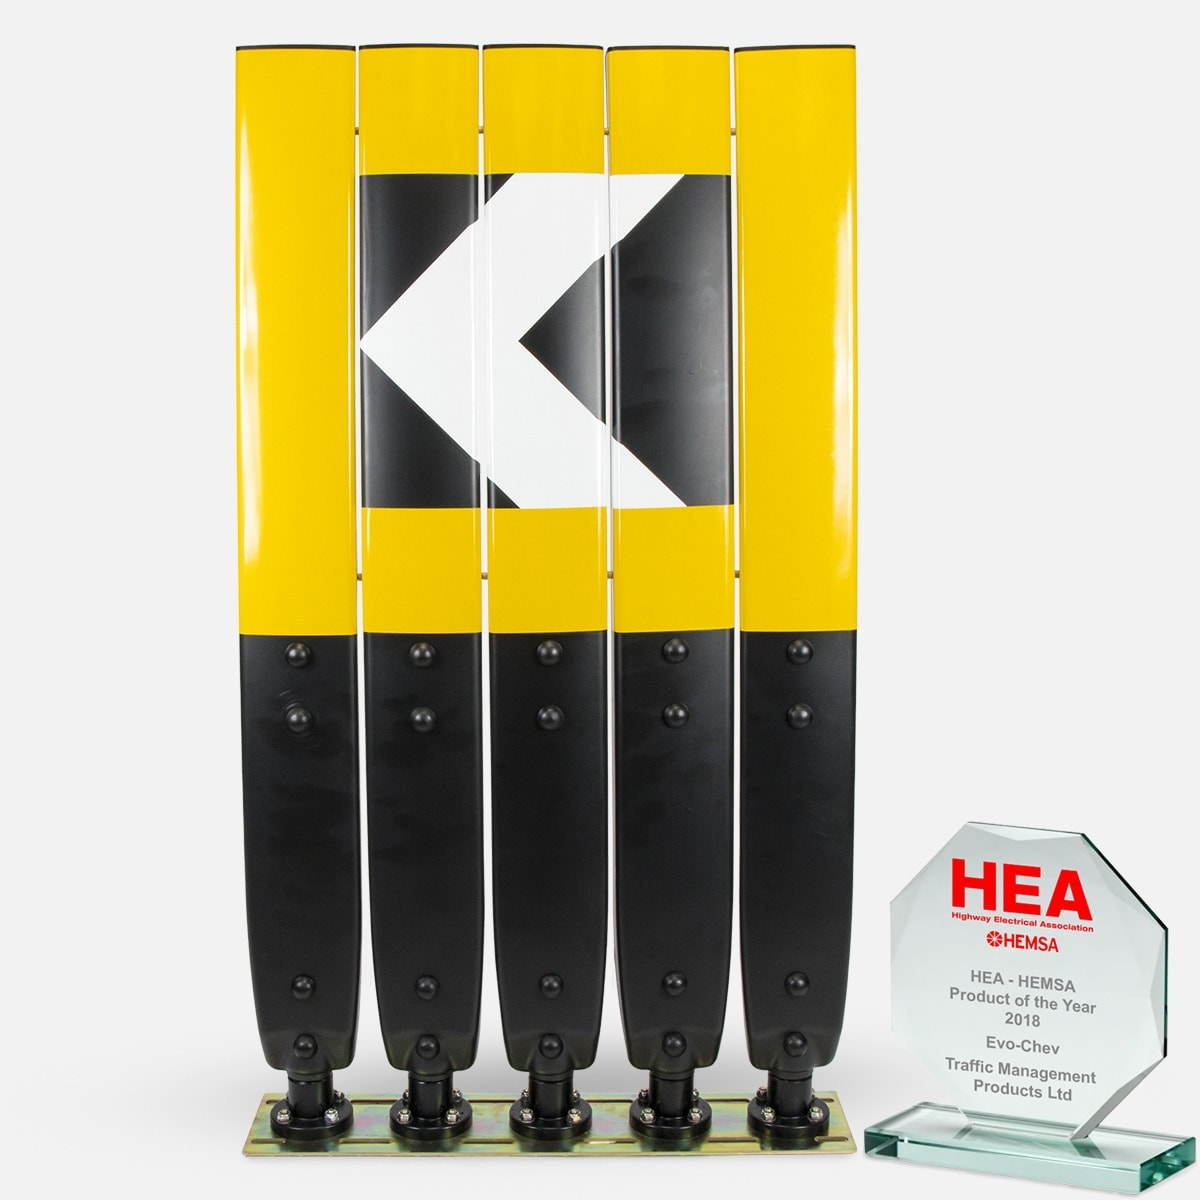 HEA Traffic Product of the year 2018 TMP Evo Chev